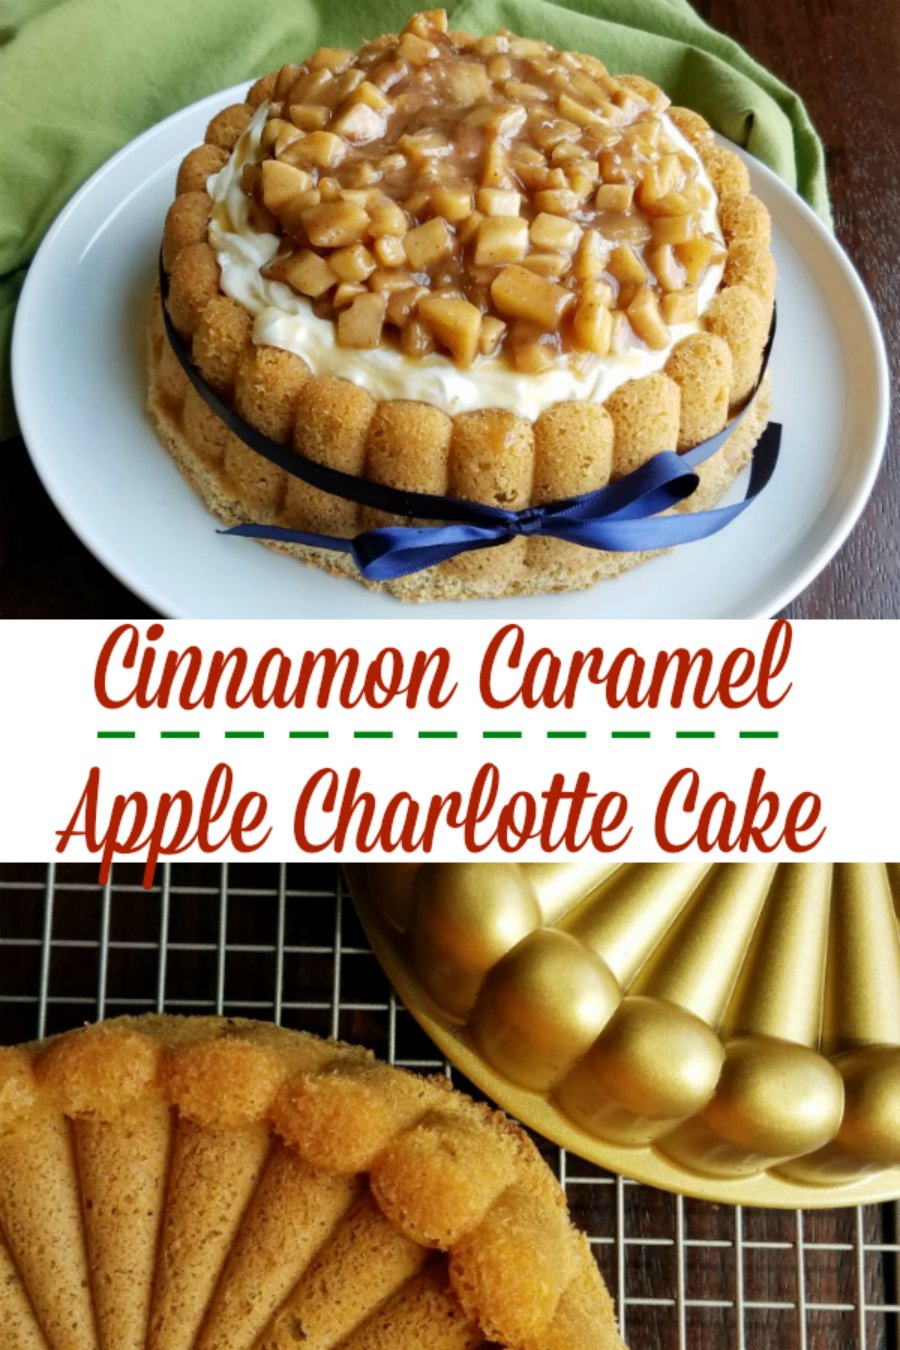 A spongy cinnamon cake in the shape of a classic Charlotte, topped with fluffy whipped cream cheese and plenty of cinnamon and caramel apples. It's a perfect taste of sweet fall flavors!